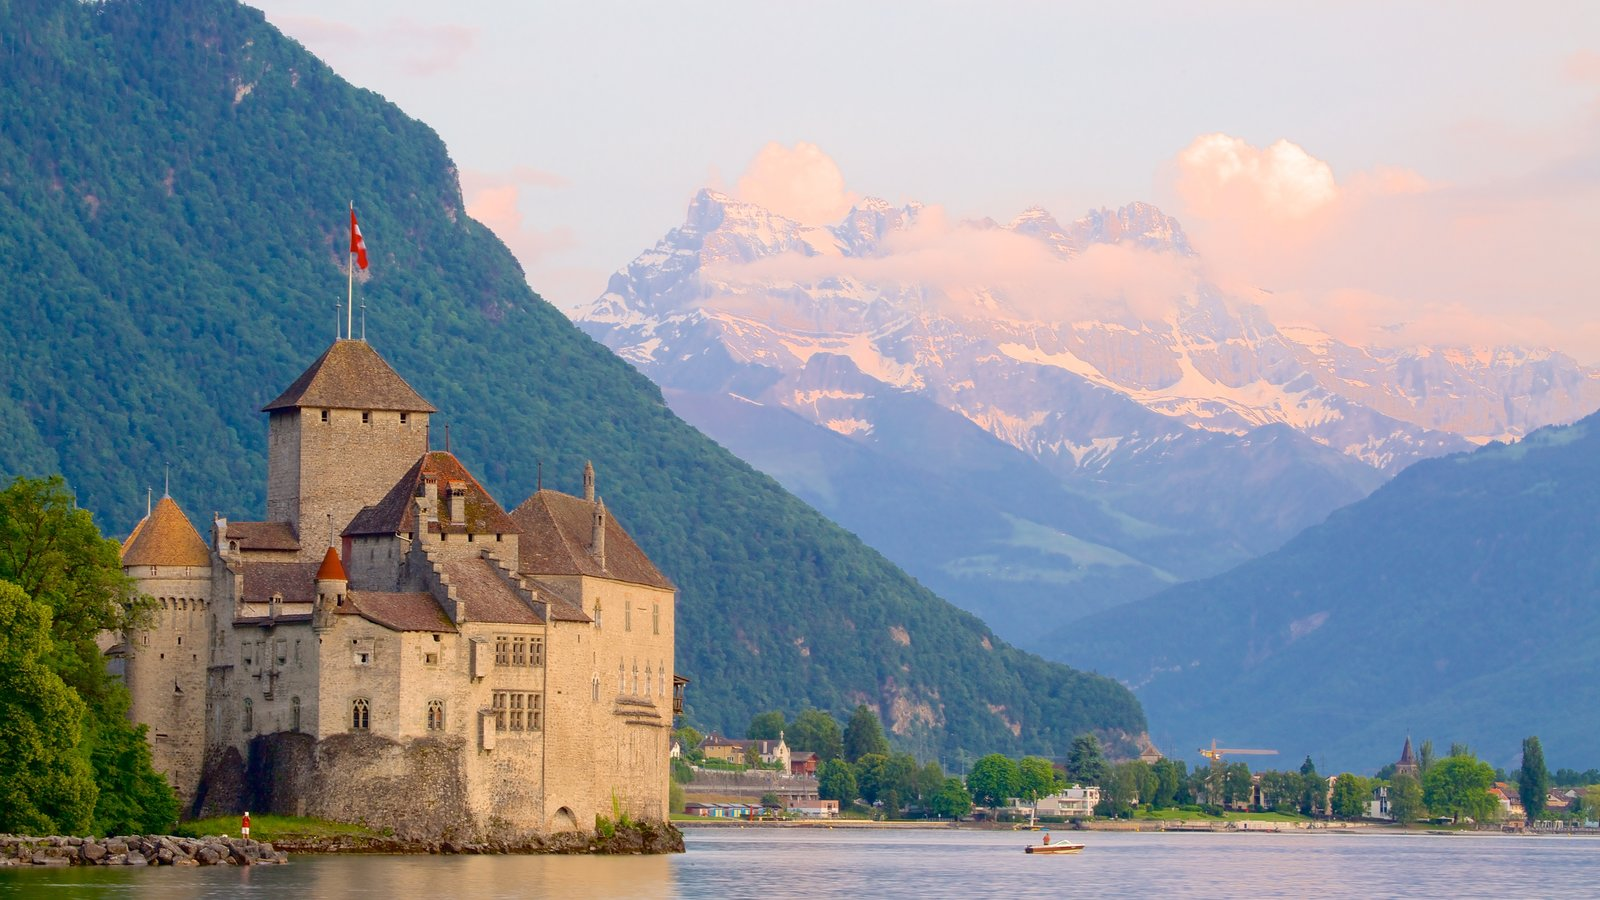 Chateau de Chillon which includes a lake or waterhole, château or palace and mountains